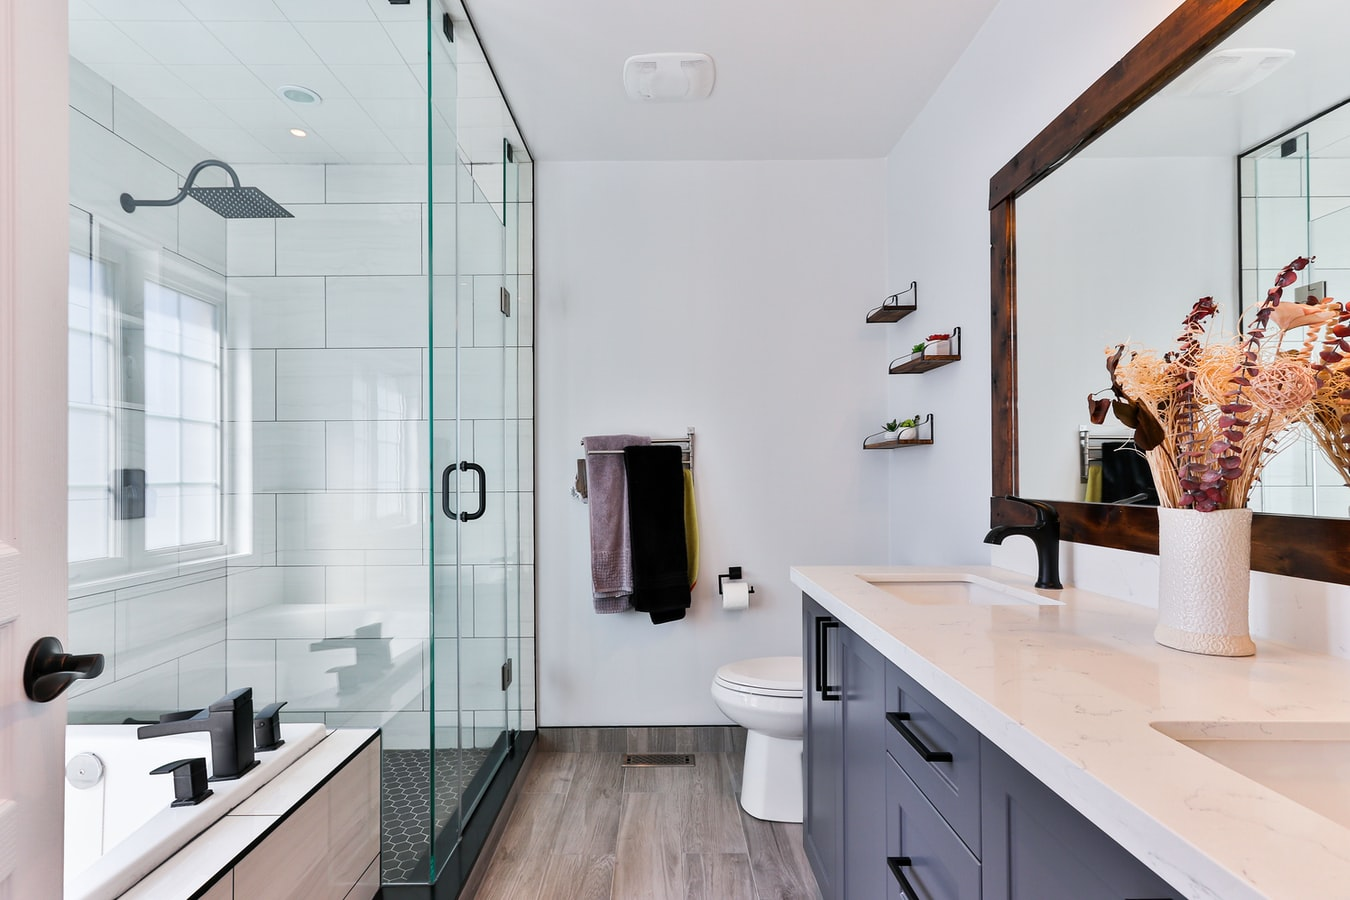 Top Trends To Watch Out For In UK Bathroom Design